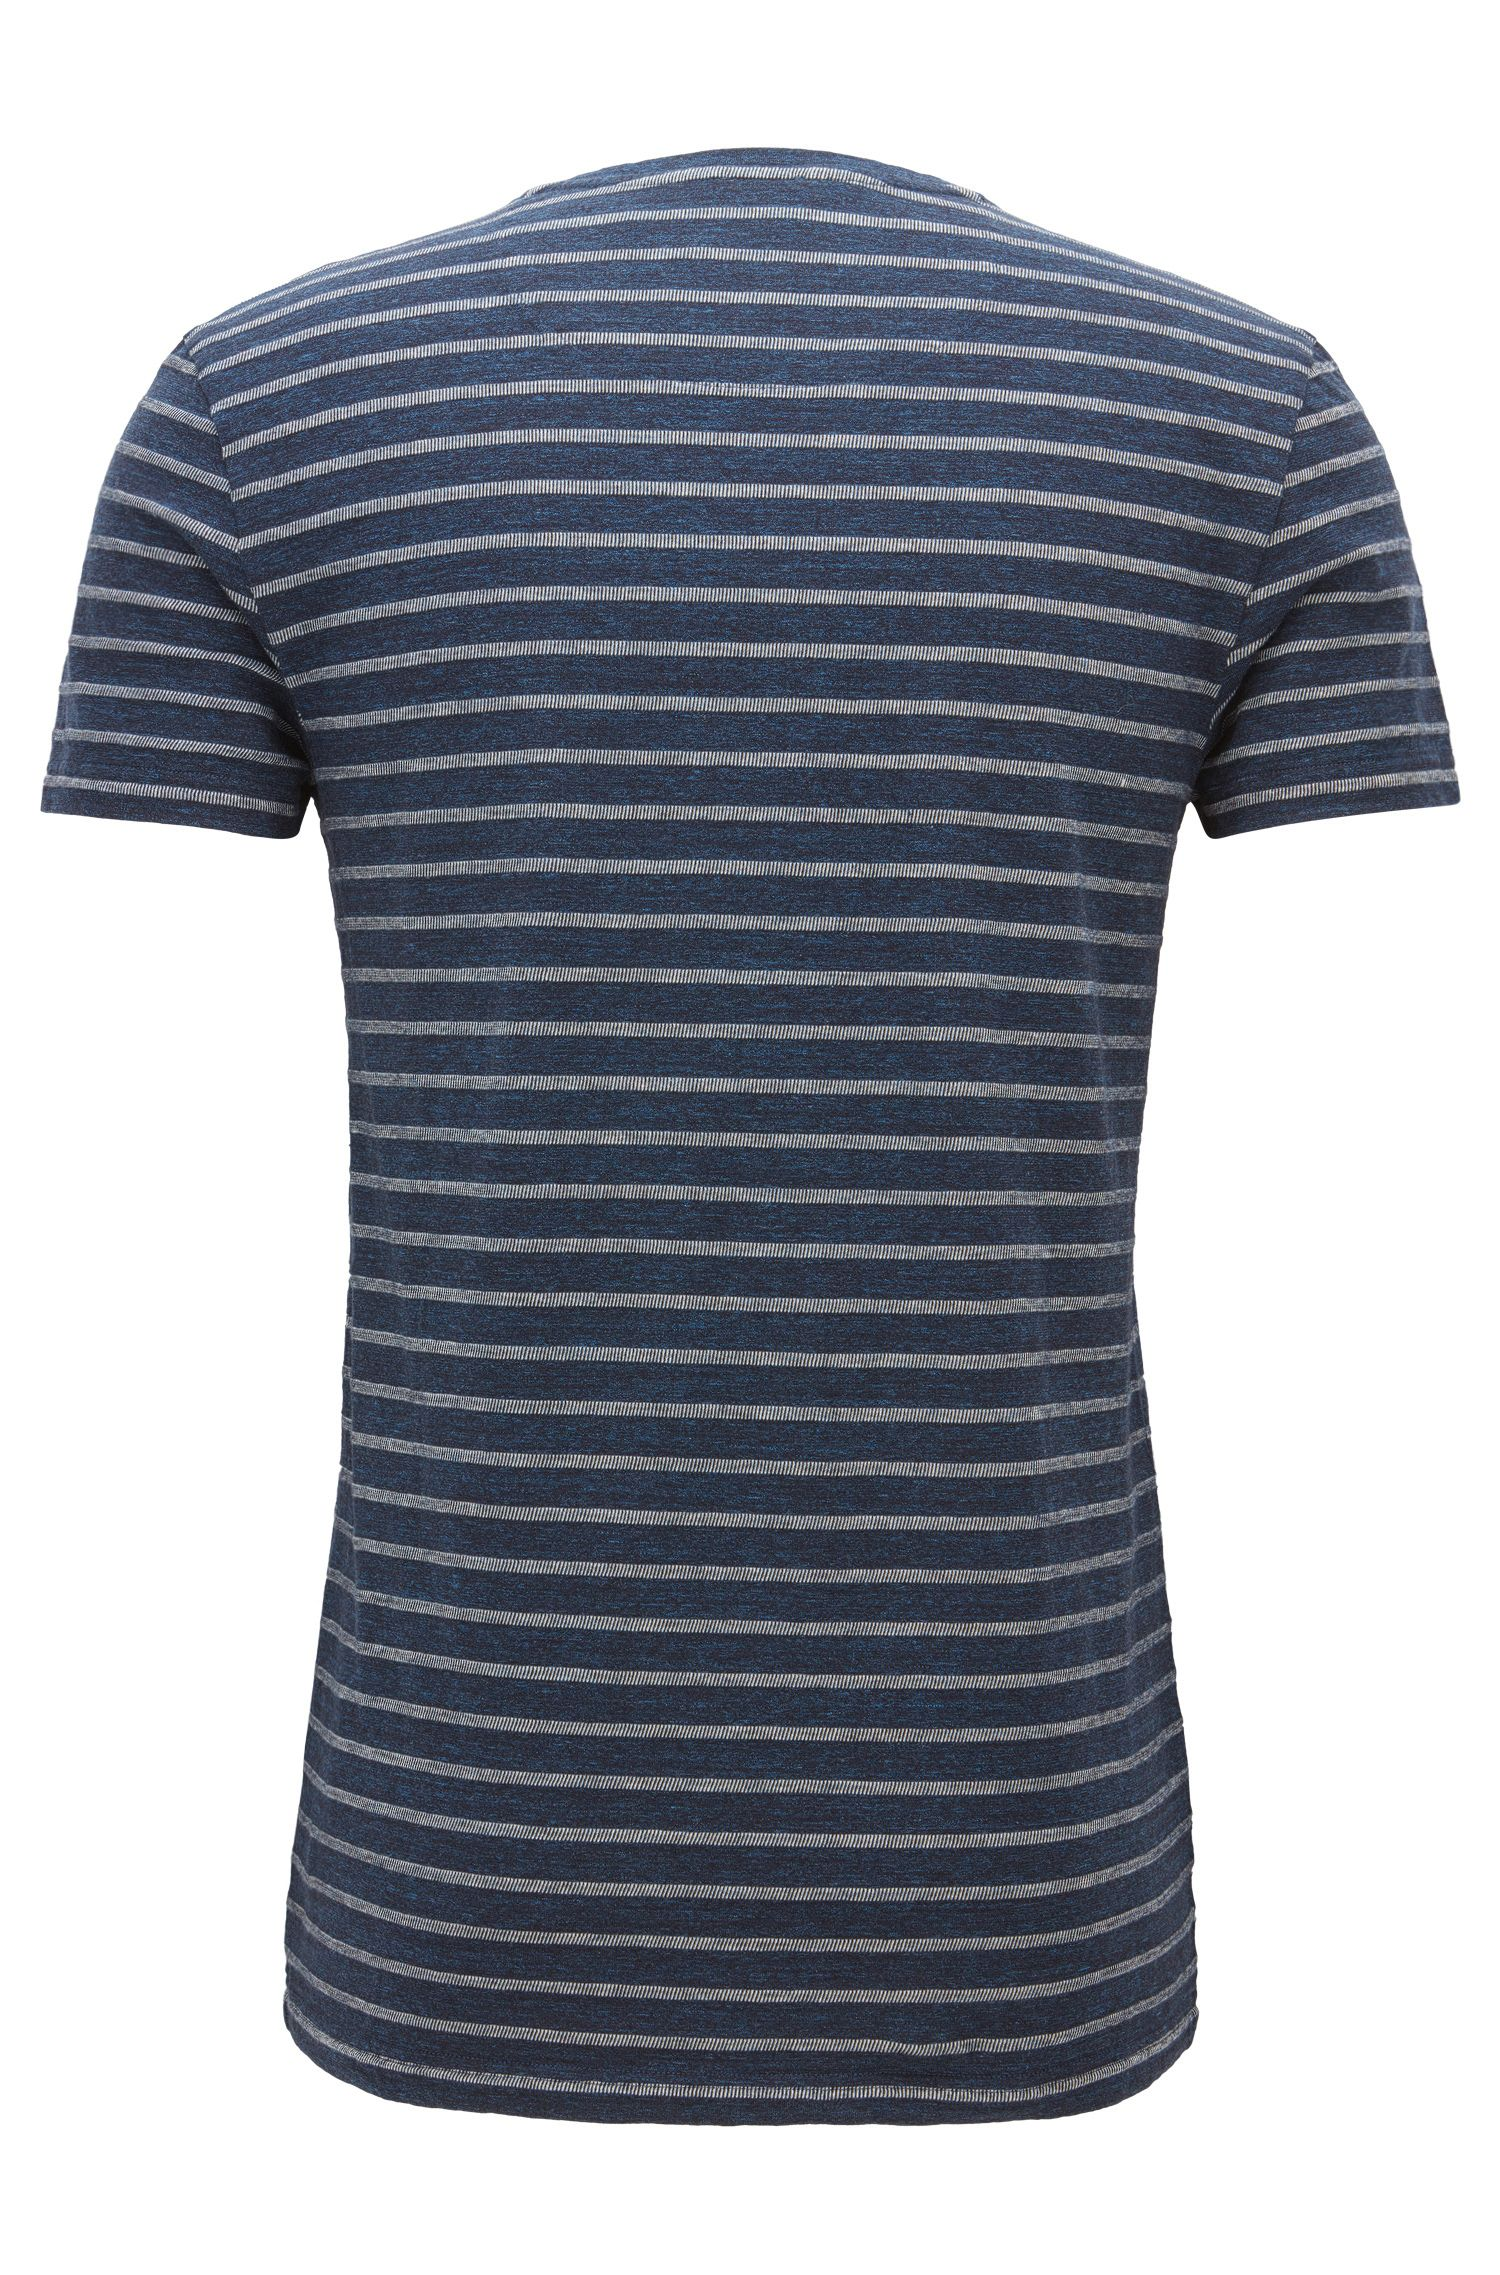 'Tramway' | Striped Cotton Jersey T-Shirt, Dark Blue